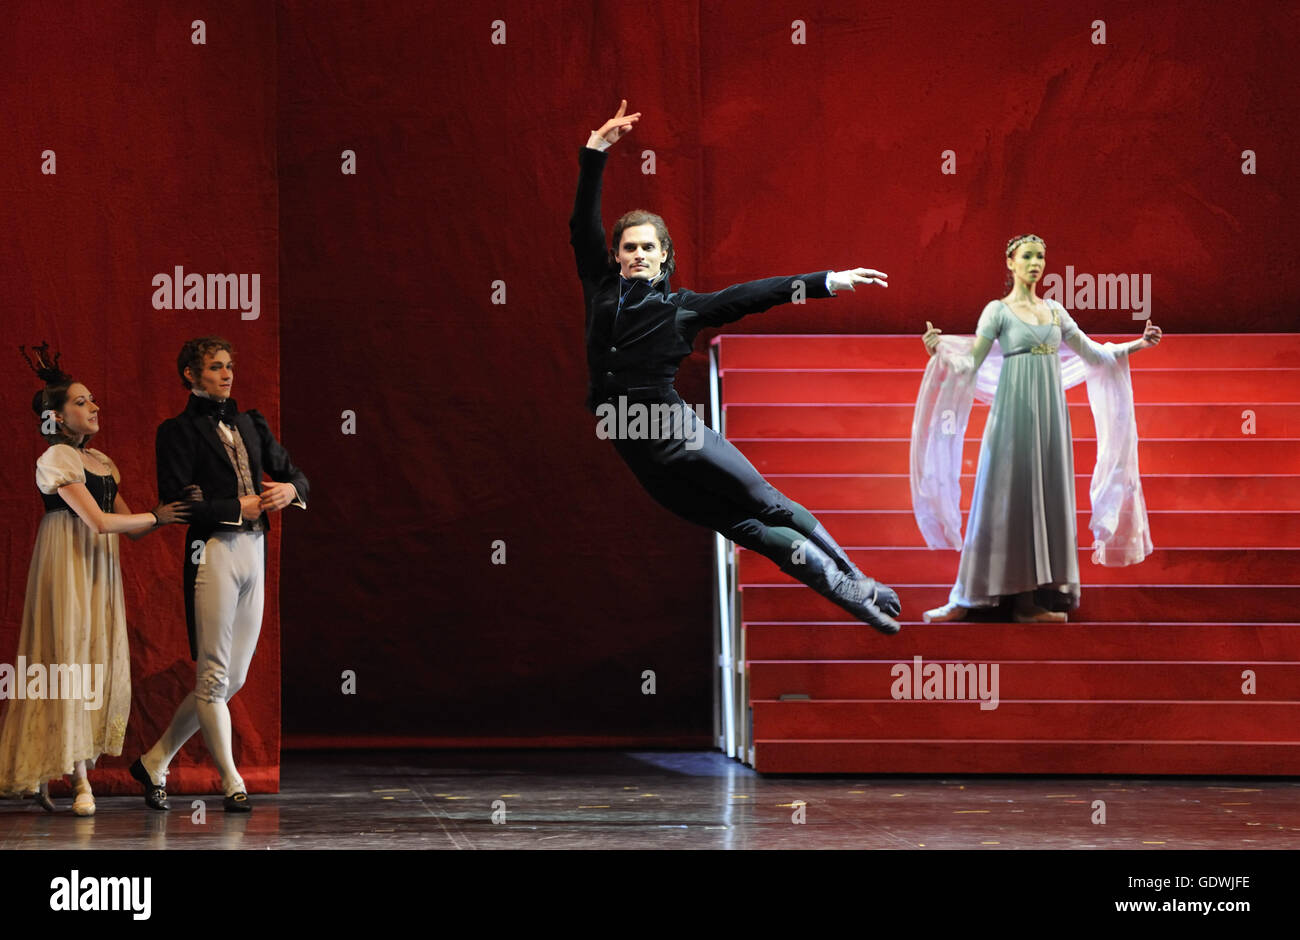 'The Flaming Heart', ballet by Patrice Bart - Stock Image